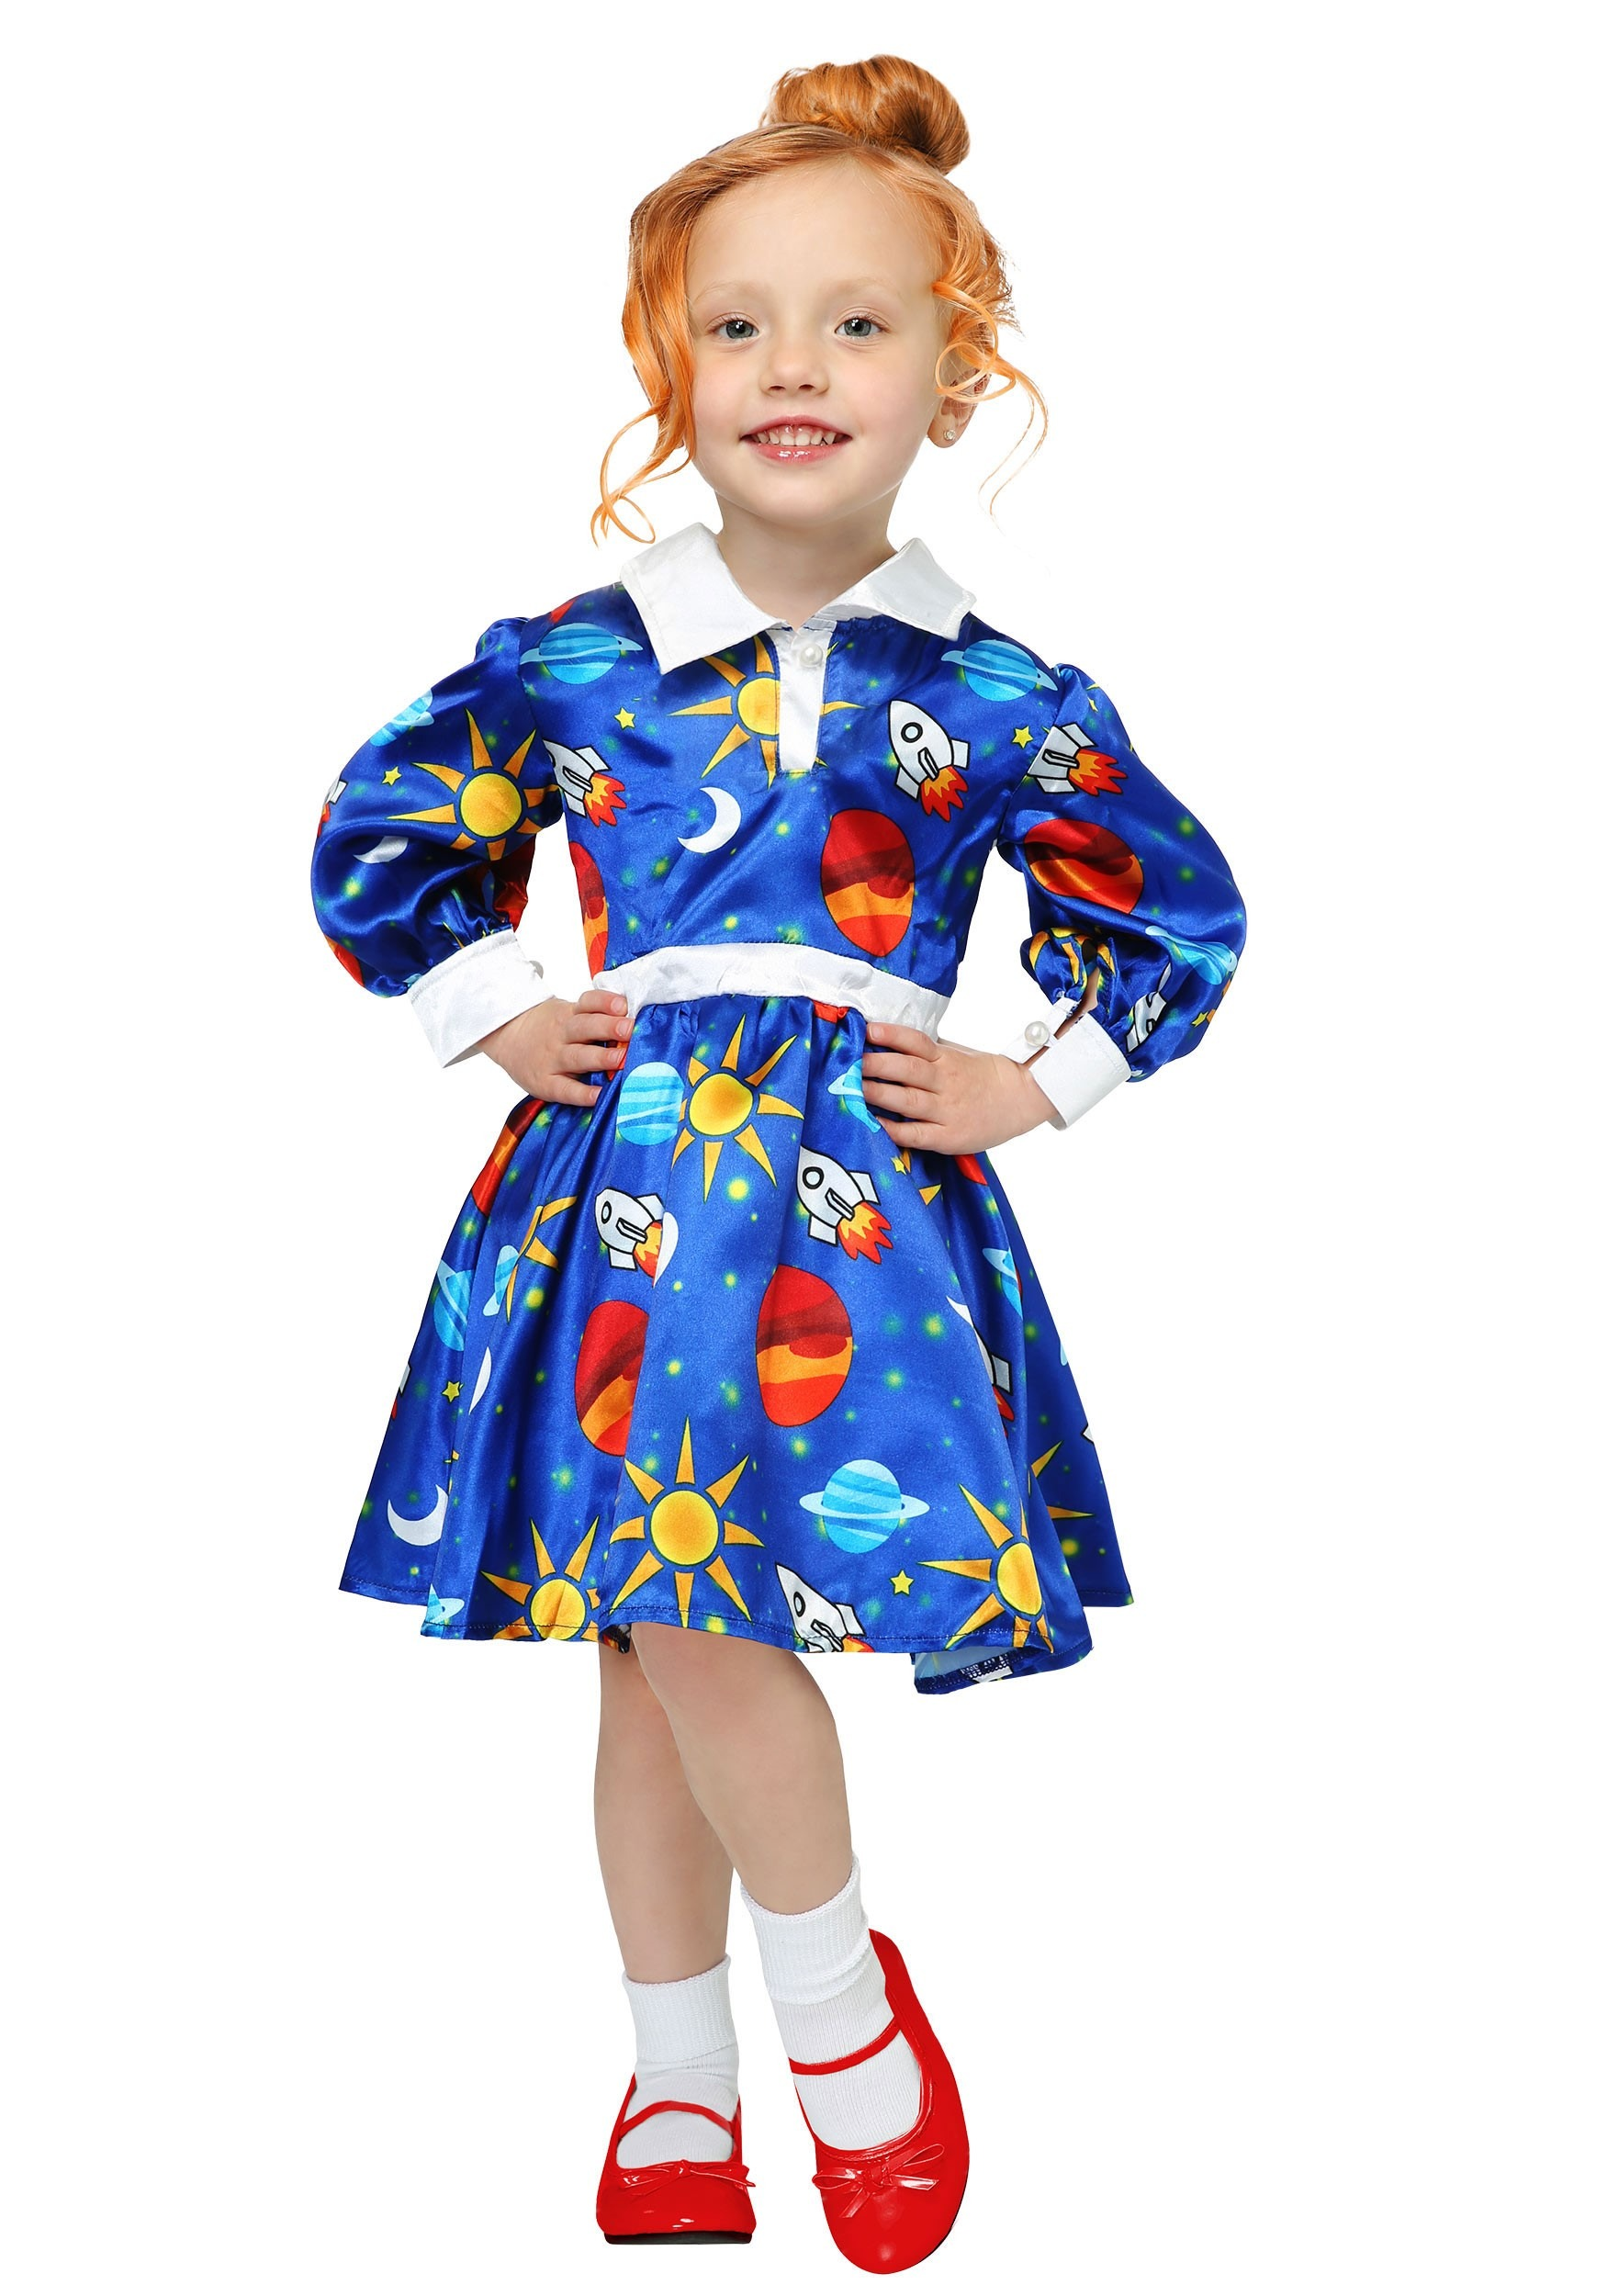 Magic School Bus Ms. Frizzle Costume for Toddlers